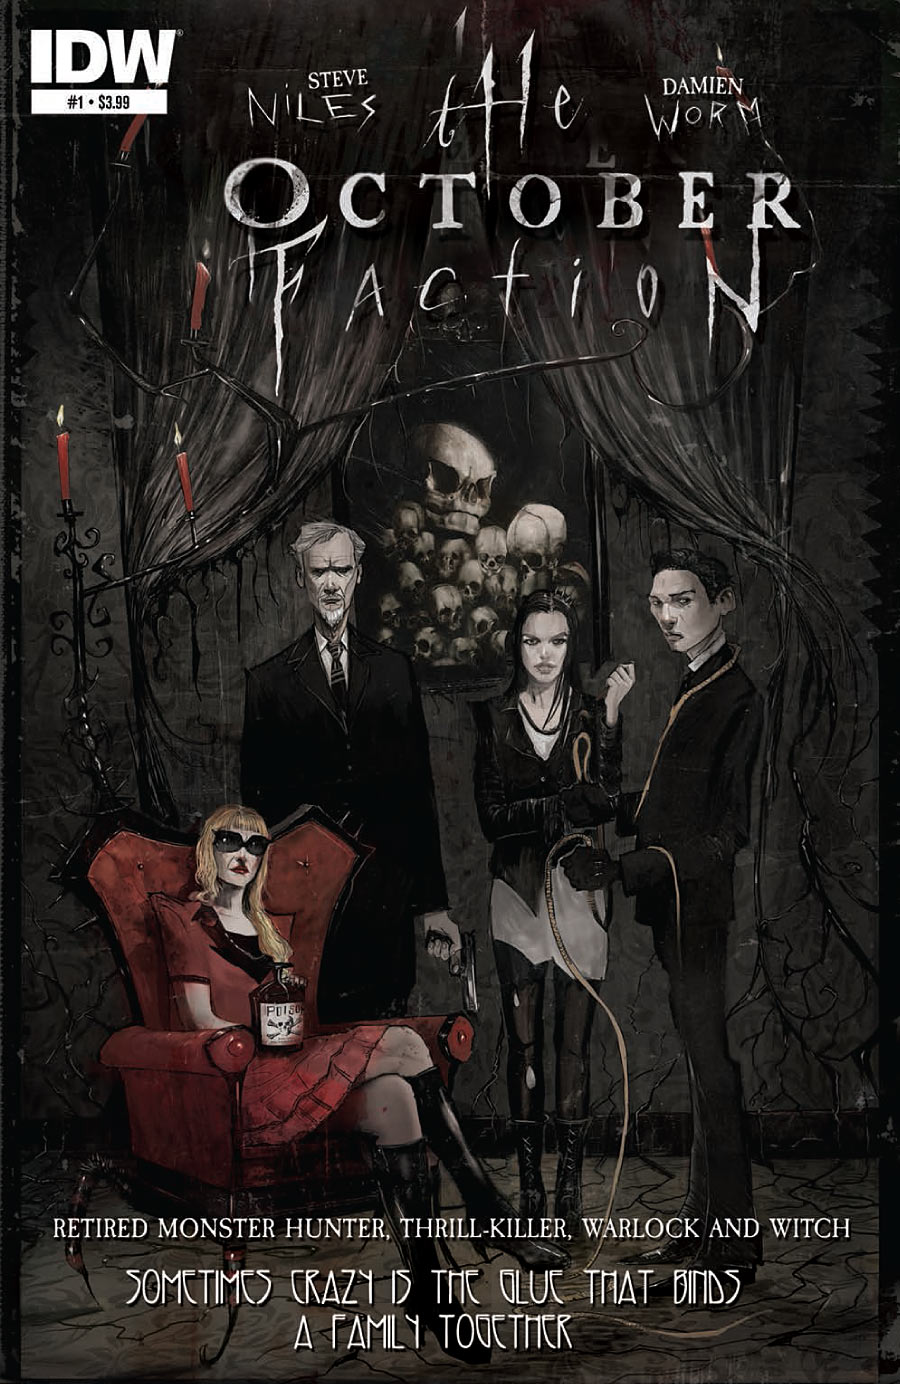 The October Faction #1